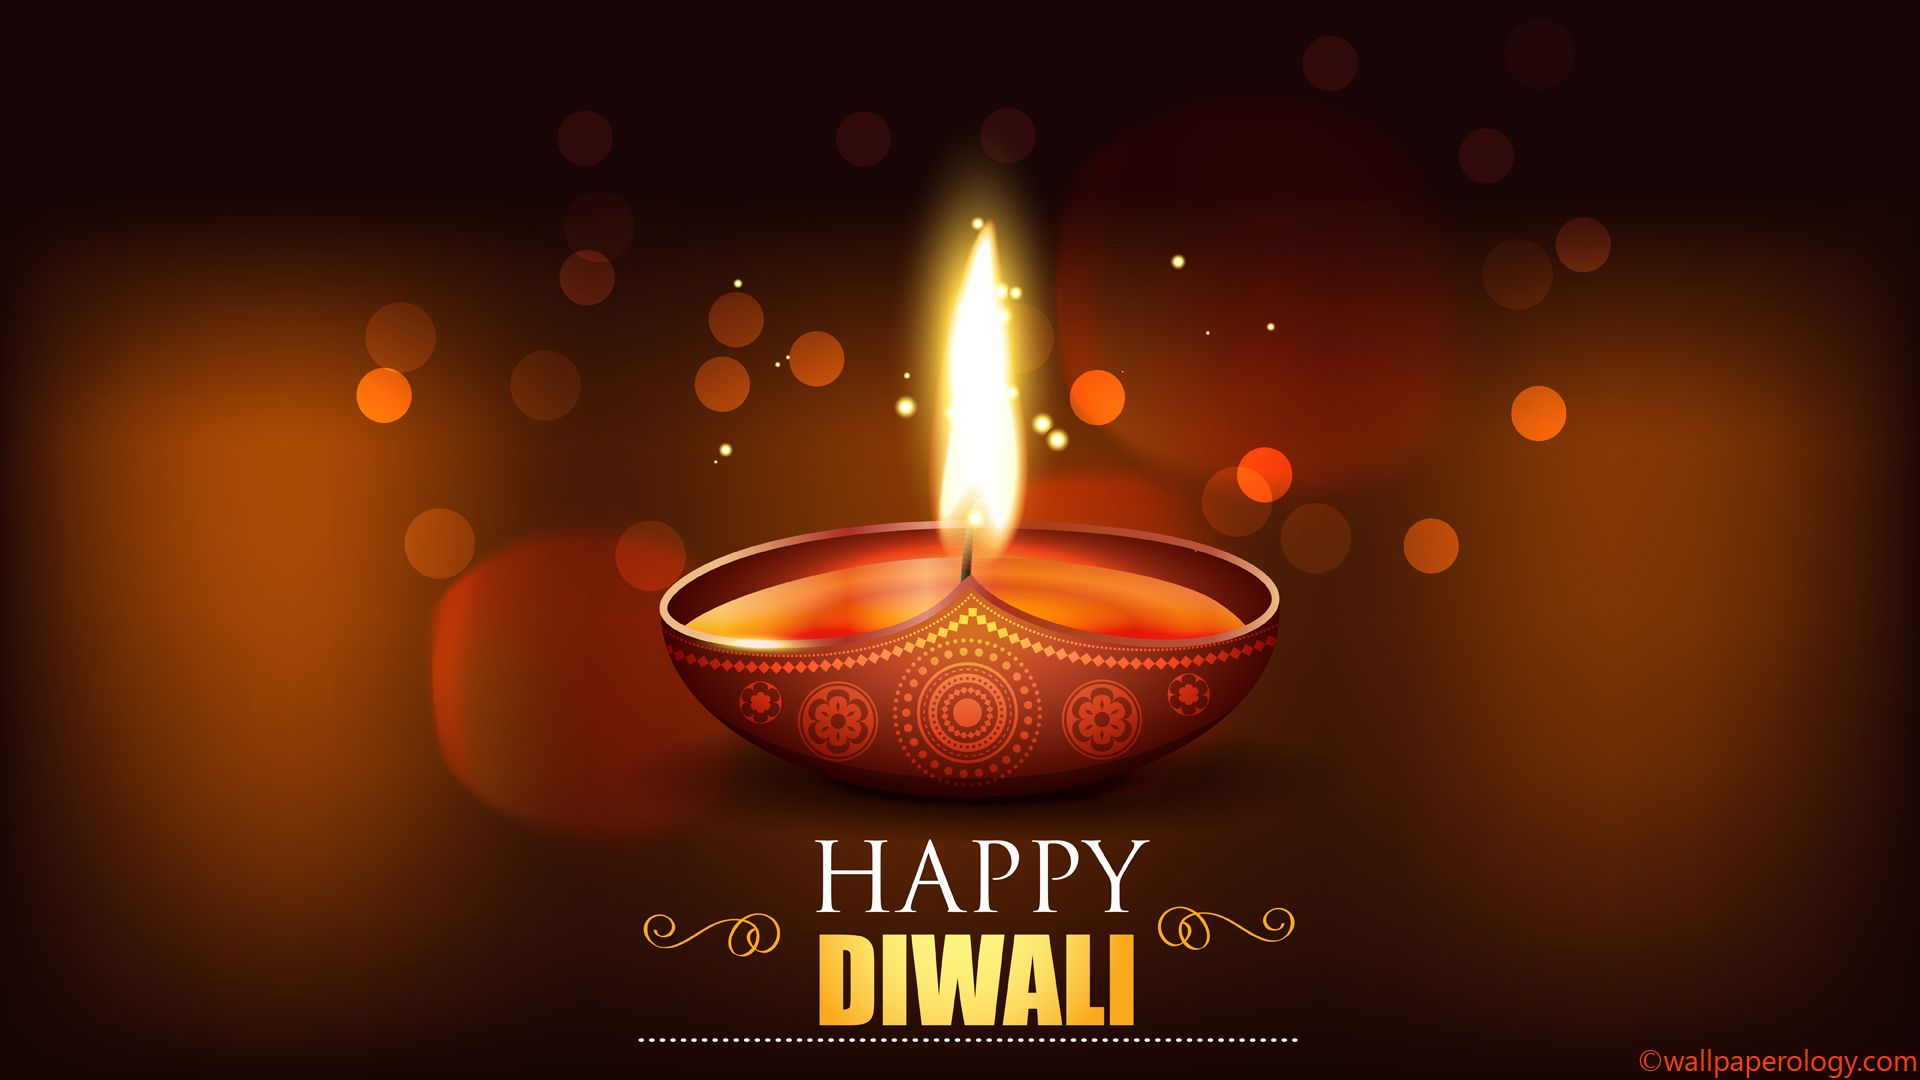 Quotes Indian Google Search Divali Pinterest Happy Diwali